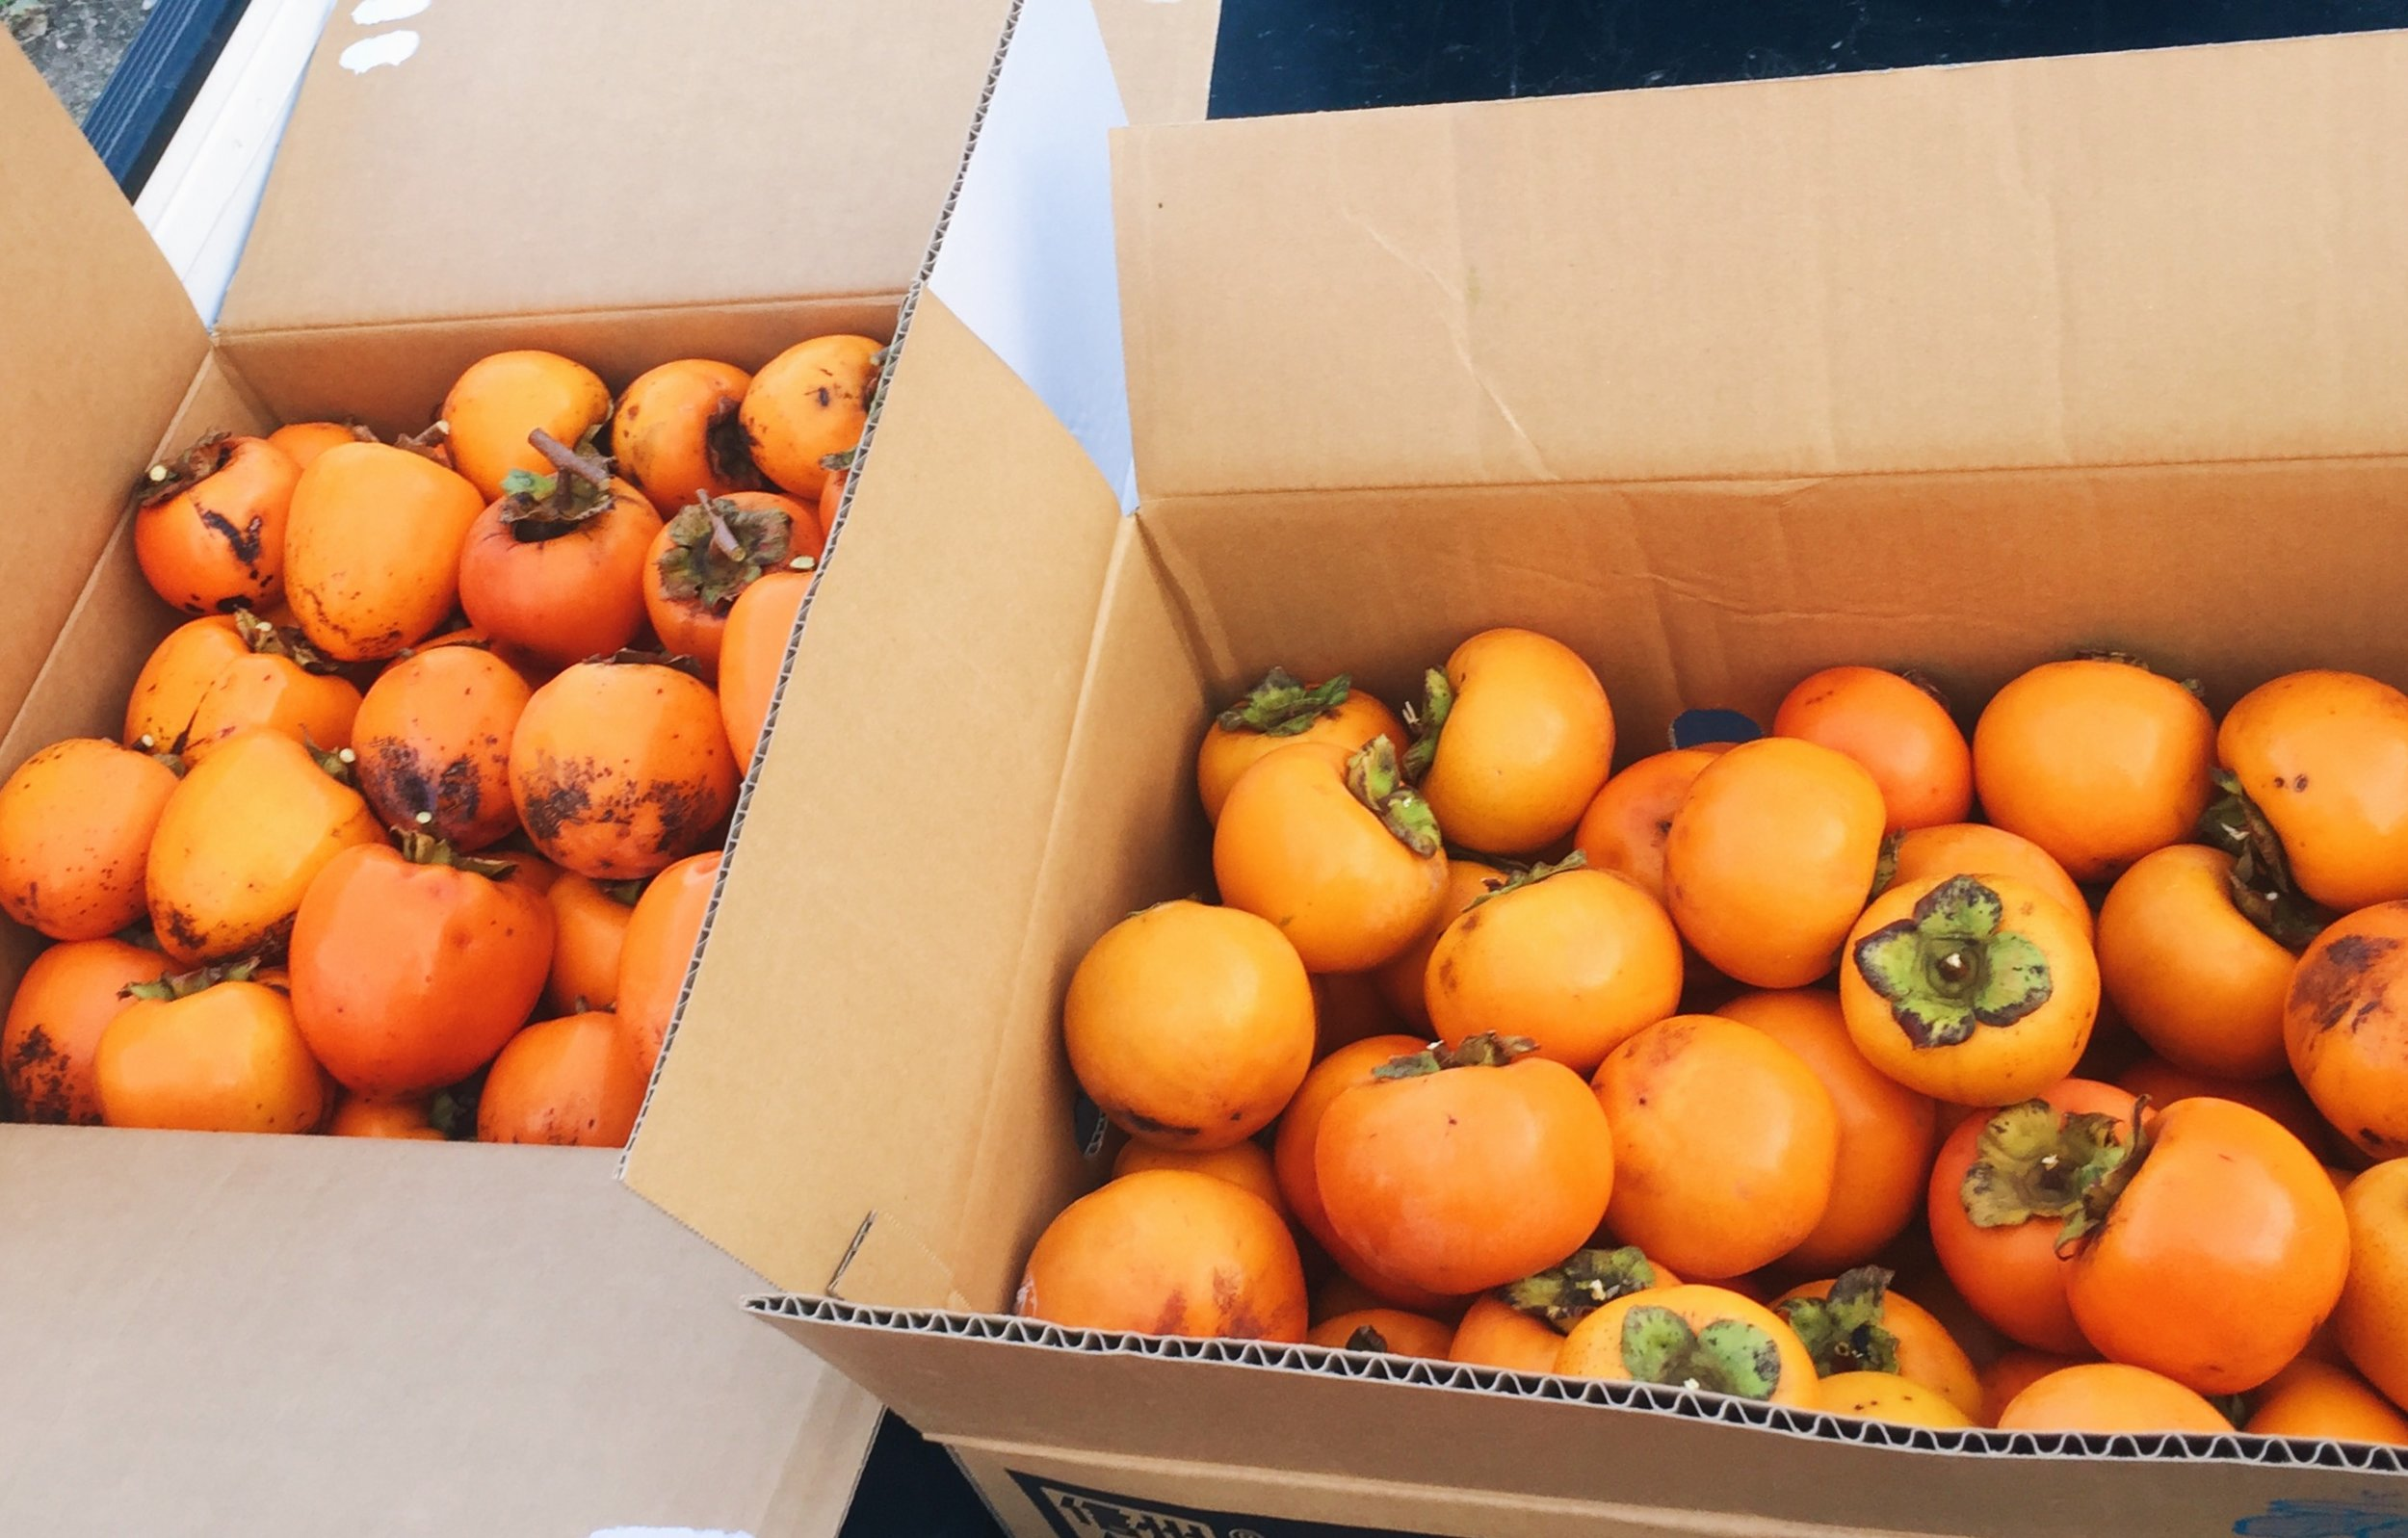 Boxes of fuyu and hachiya persimmons